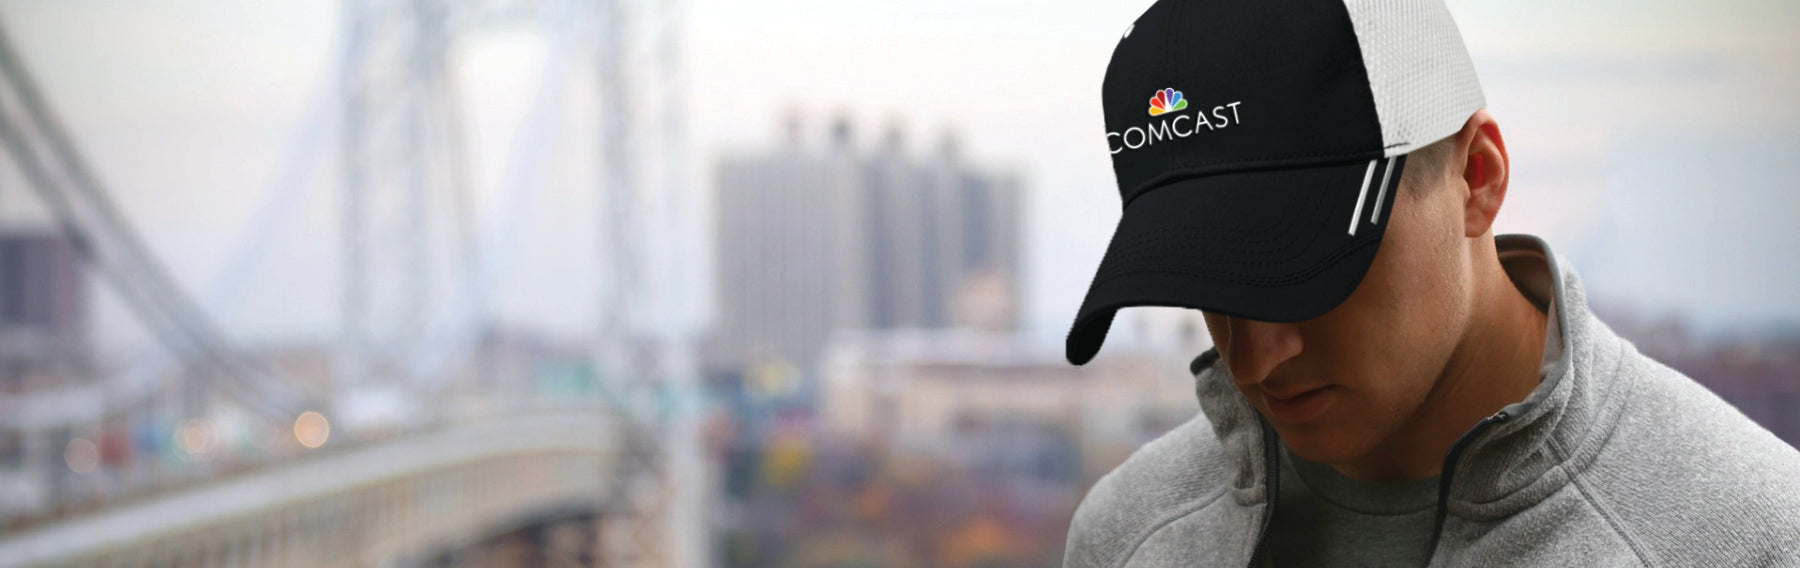 Comcastmerch